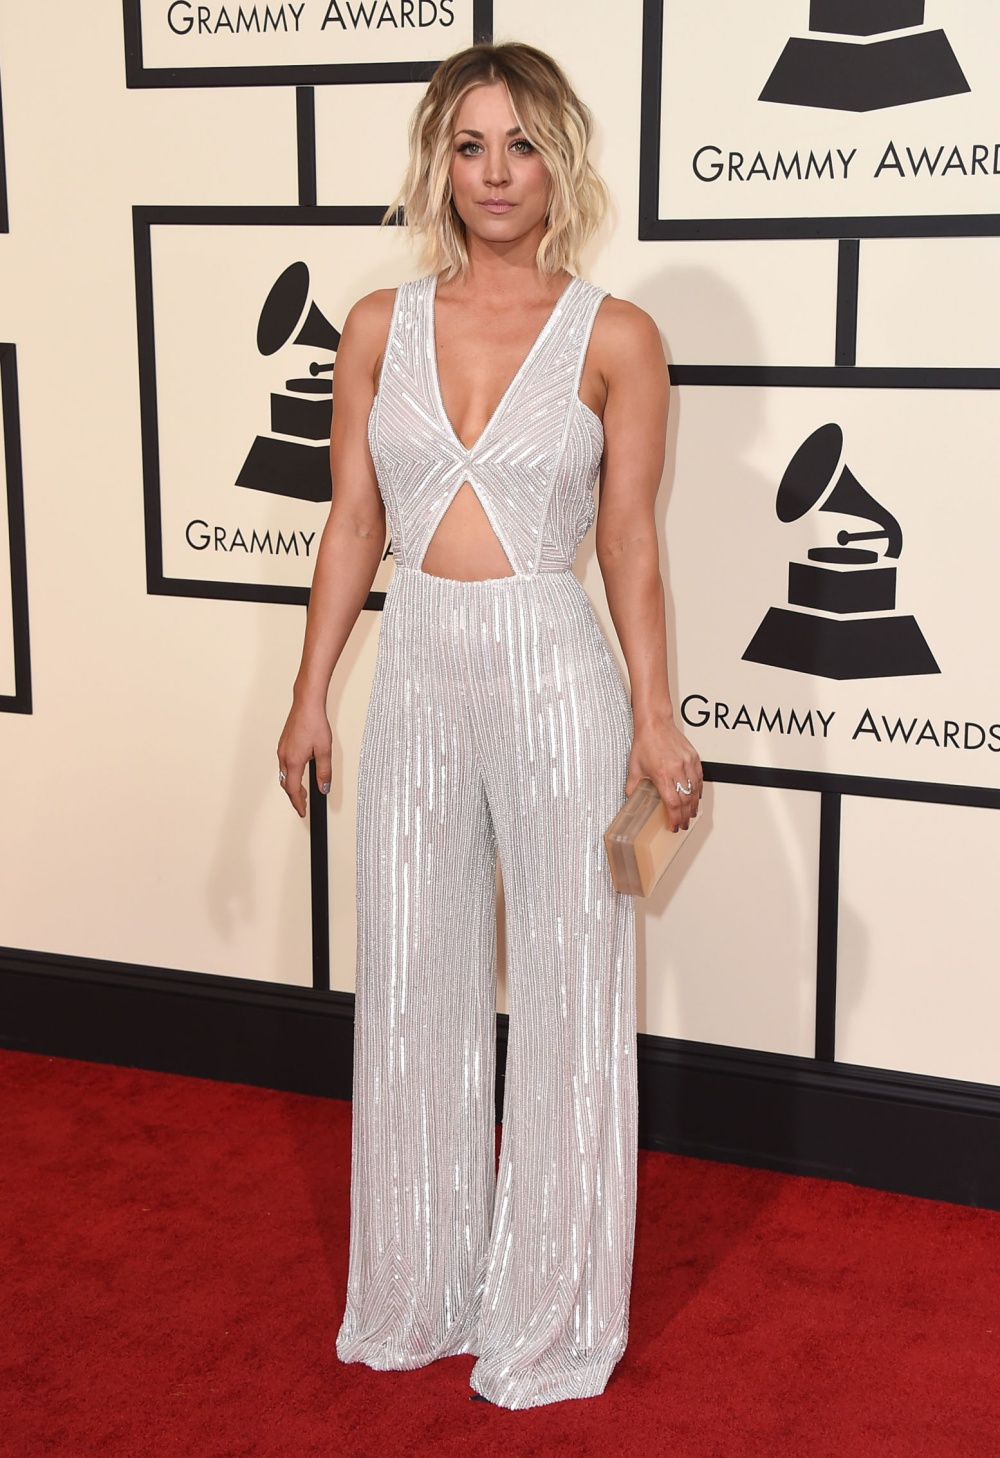 Kaley Cuoco Grammys 2016 Best Dressed Celebrities